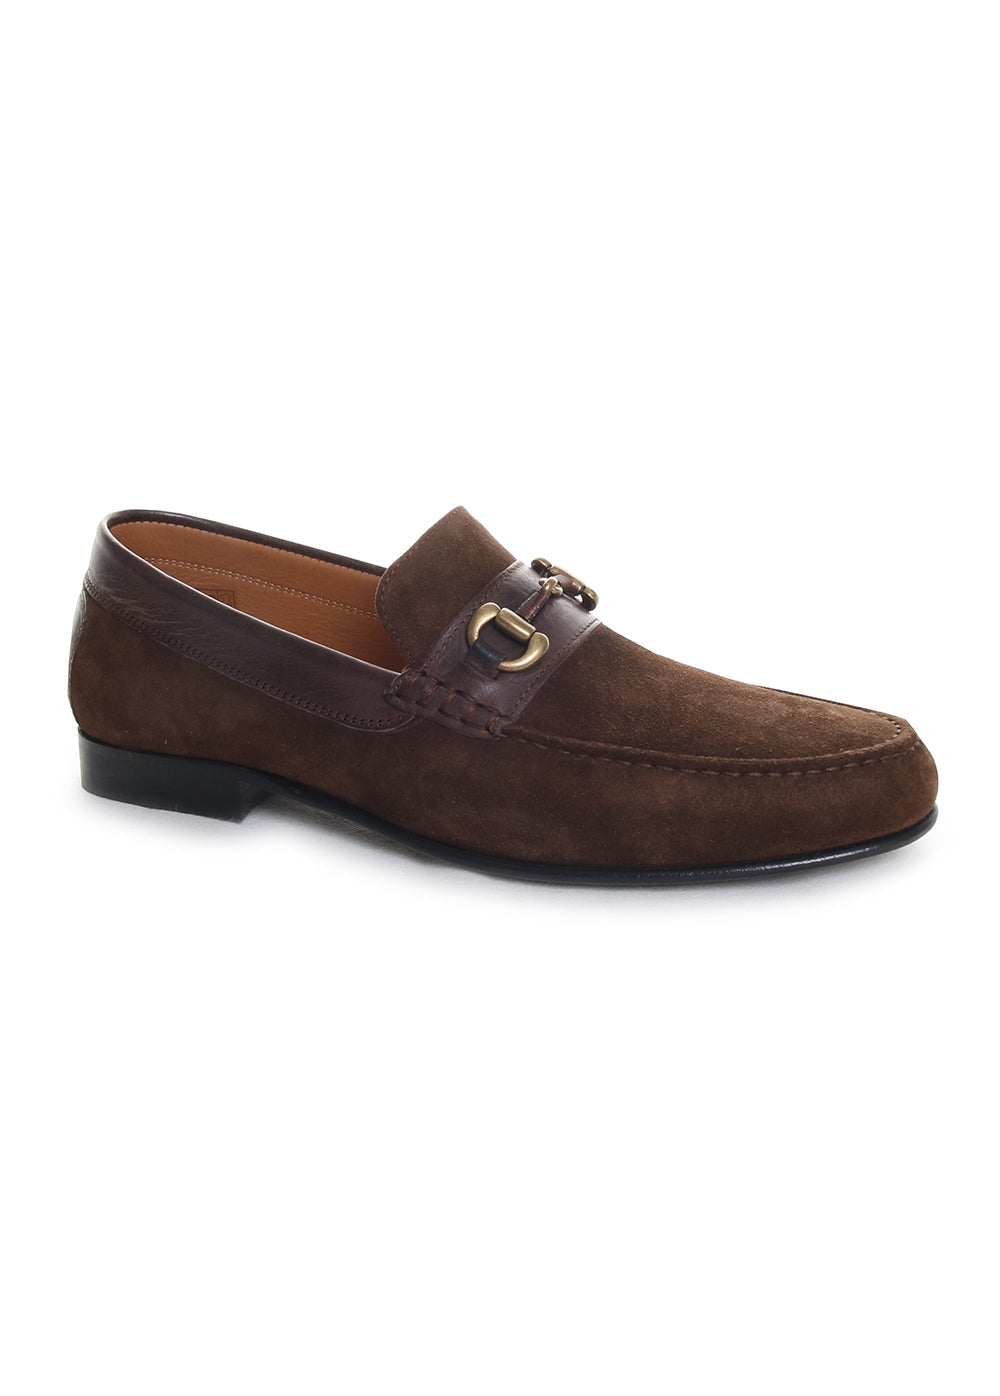 Donald Pliner Clint Loafer in Chestnut